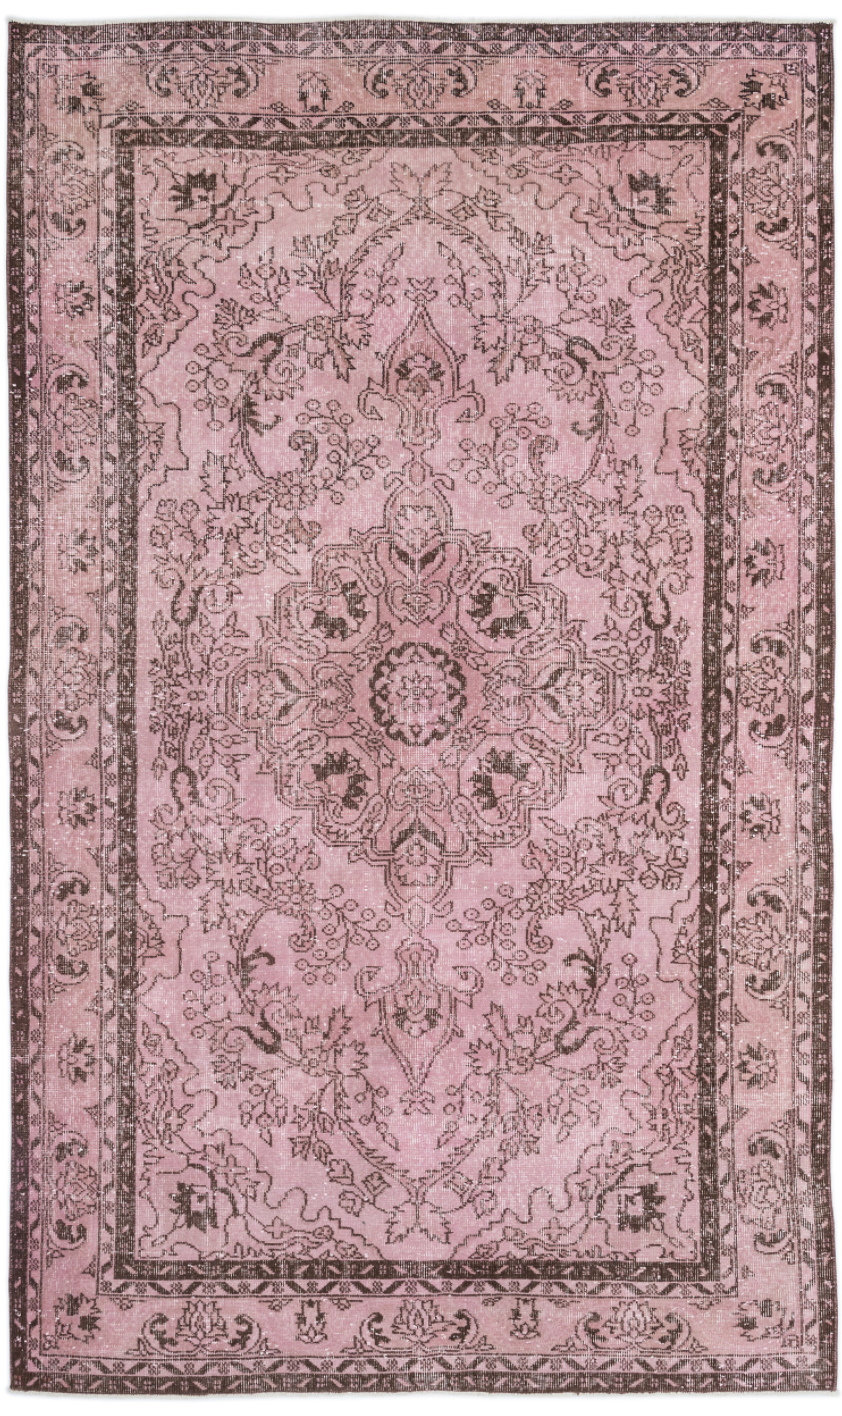 Traditional Design Pink Over Dyed Vintage Rug 5'11'' x 9'10'' ft 180 x 300 cm